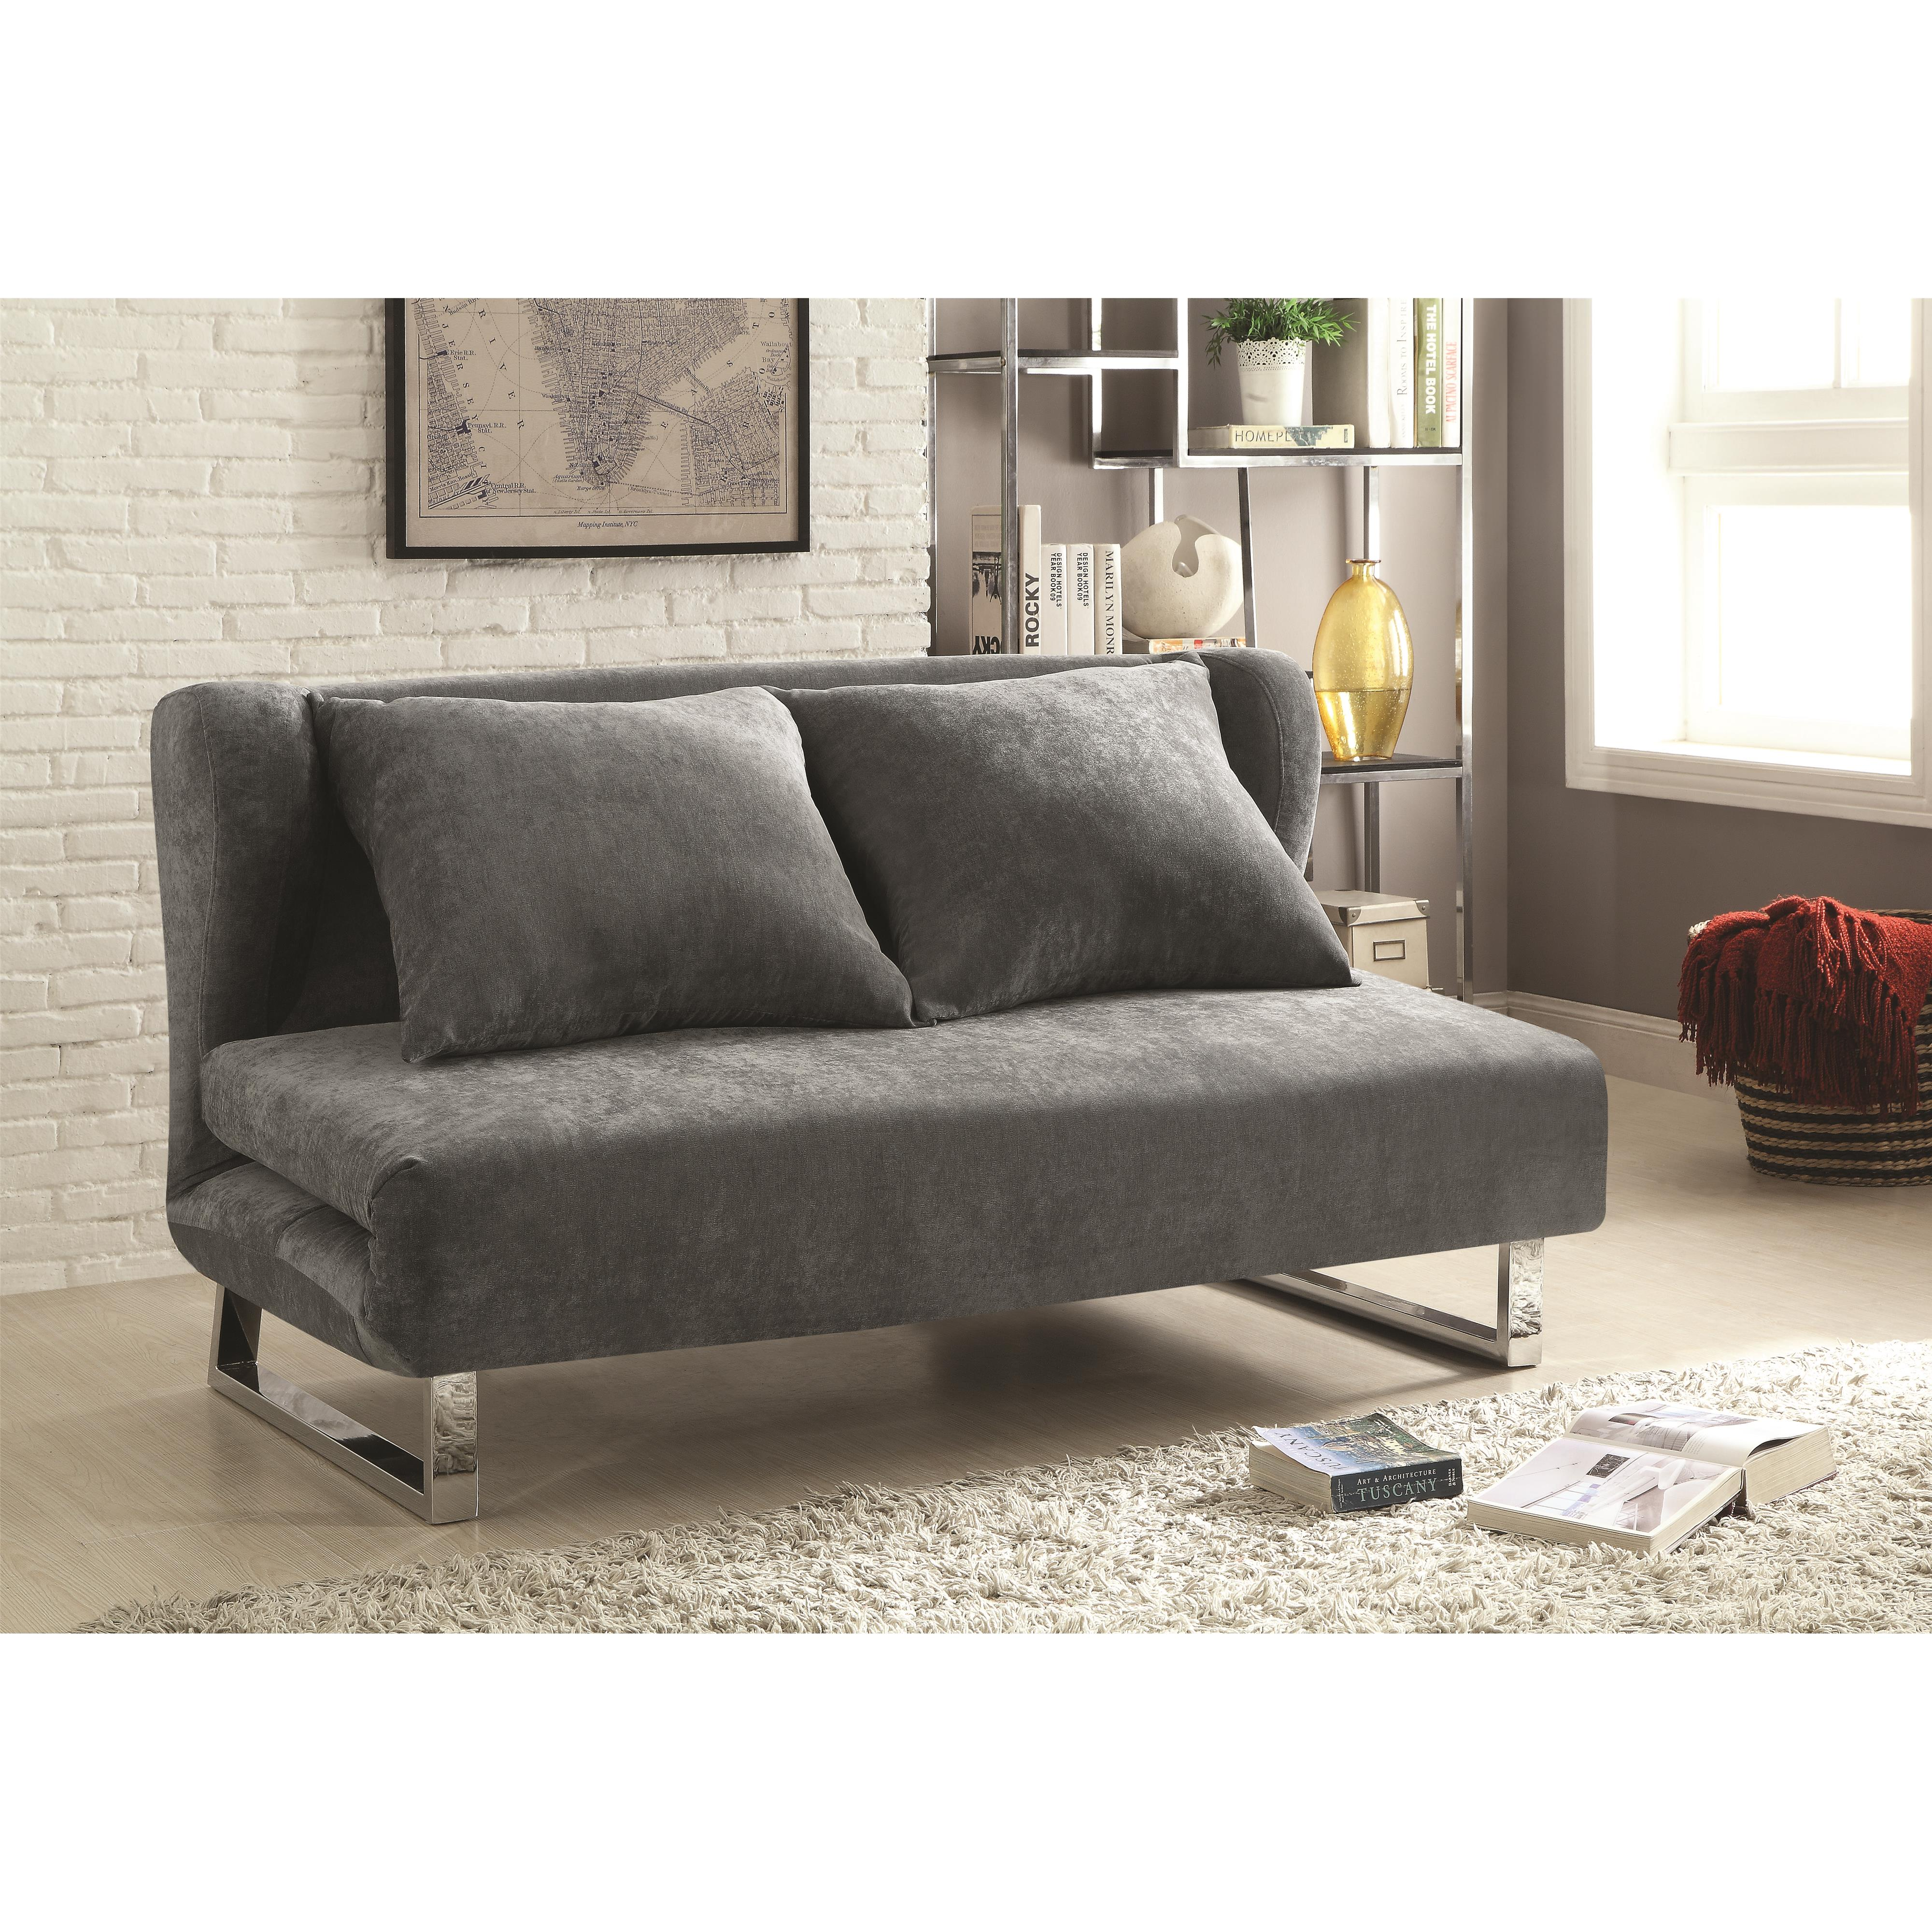 Sofa beds and futons transitional velvet sofa bed for Sofa bed philadelphia